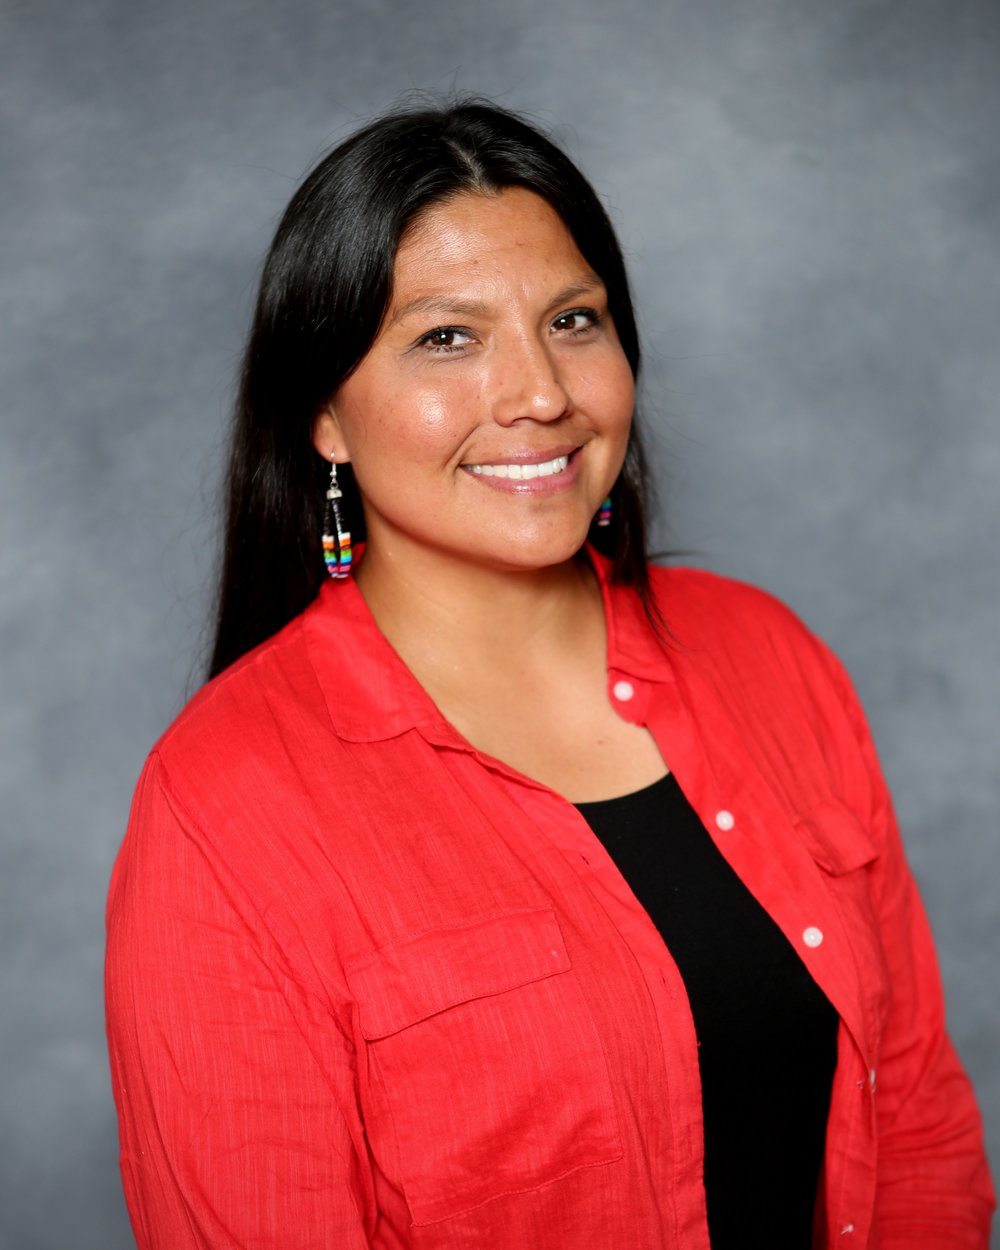 - Tatewin Means, J.D. is currently the Deputy State's Attorney of Oglala Lakota County and Graduate Studies chair at Oglala Lakota College. She earned her B.S. in Environmental Engineering from Stanford University in 2002, her Juris Doctor from University of Minnesota Law School in 2010, and her Master's in Lakota Leadership and Management from Oglala Lakota College. She was previously Attorney General of the Oglala Sioux Tribe. Tatewin is a member of the Sisseton Wahpeton Dakota and Oglala Lakota tribes and grew up on the Pine Ridge Reservation. She has two children.